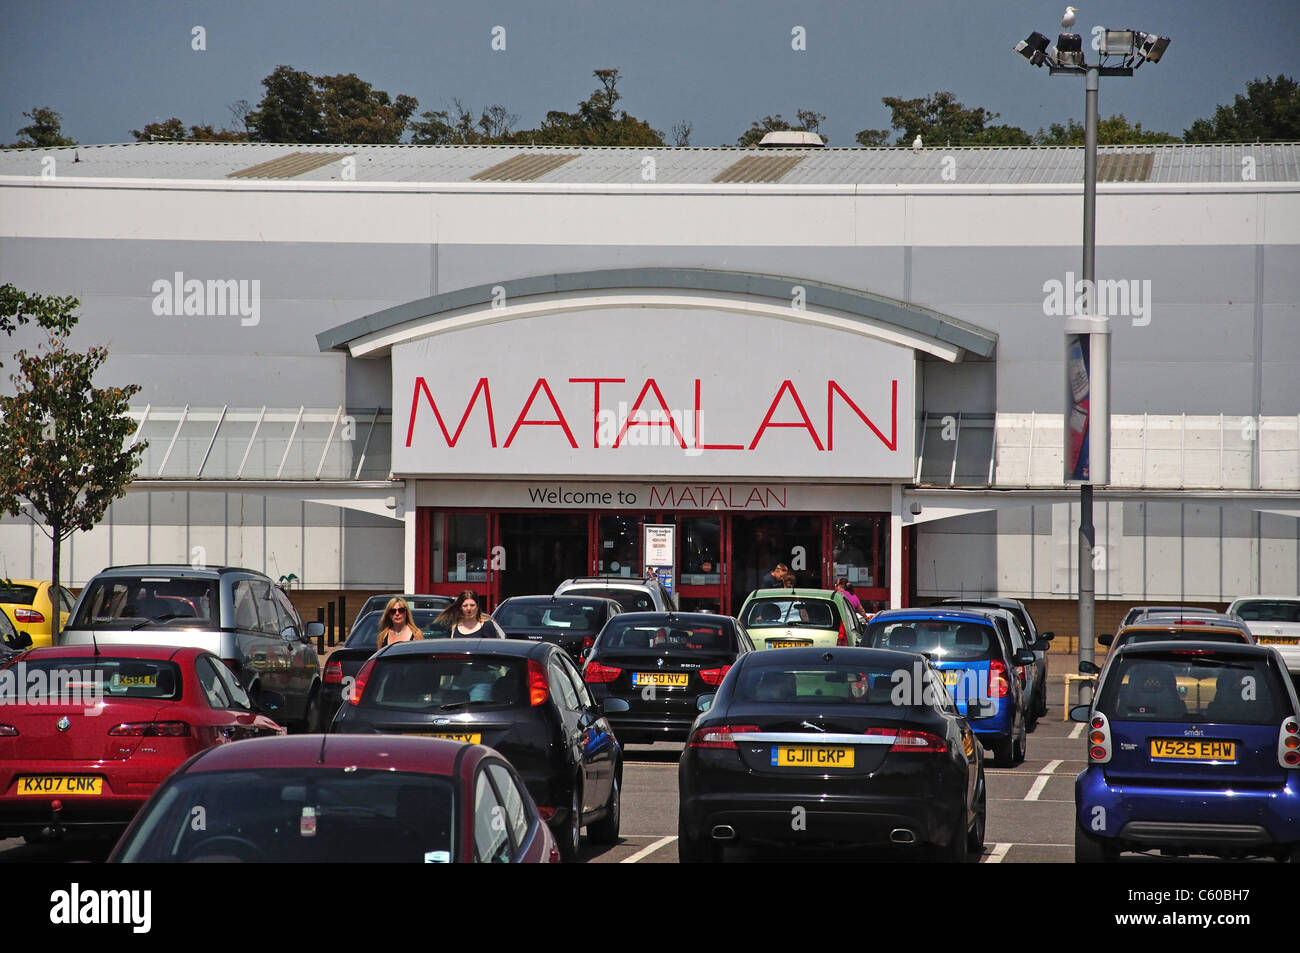 Matalan Store, Westwood Retail Park, Broadstairs, Isle of Thanet, Thanet District, Kent, England, United Kingdom - Stock Image